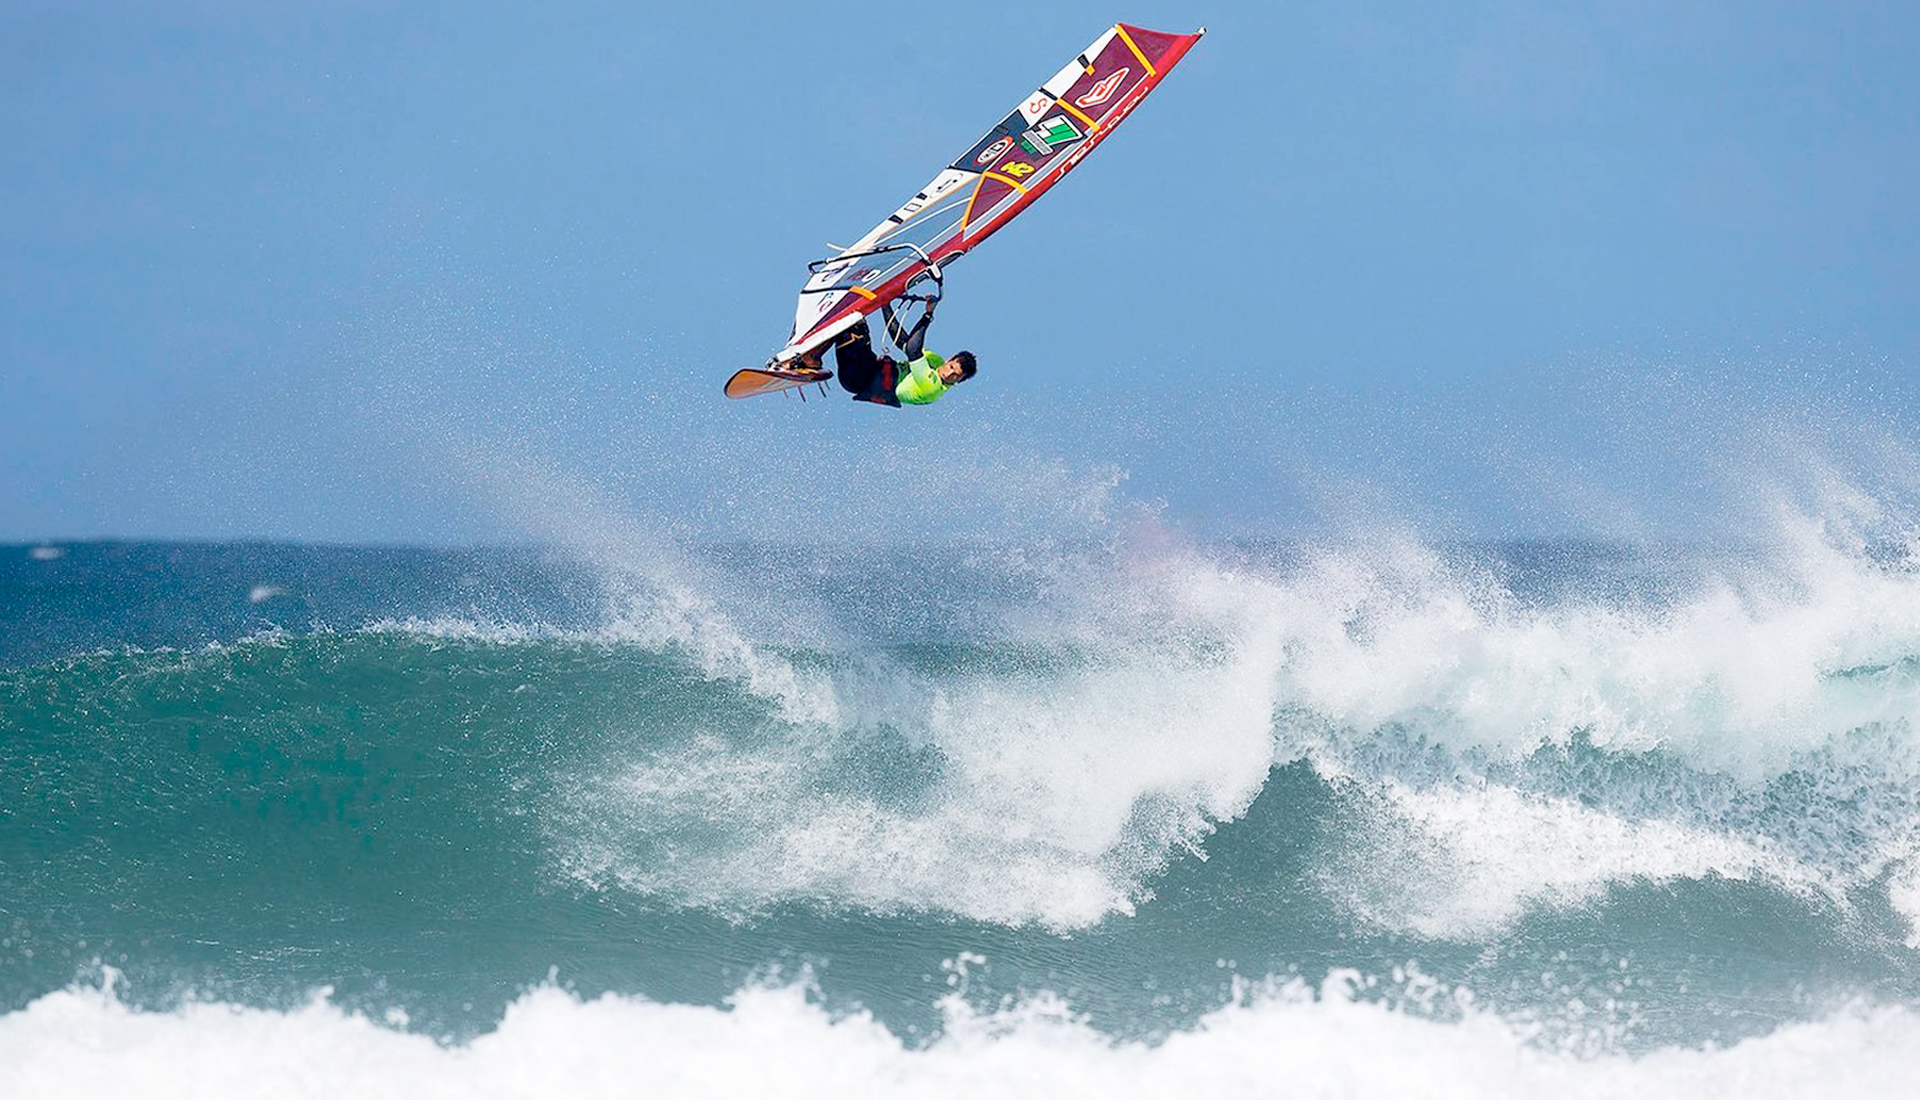 Watersports News, surf, Surfing, kite, kitesurf, boards, kiteboarding, kitesurfing, kiteboard, windsurf, water sports